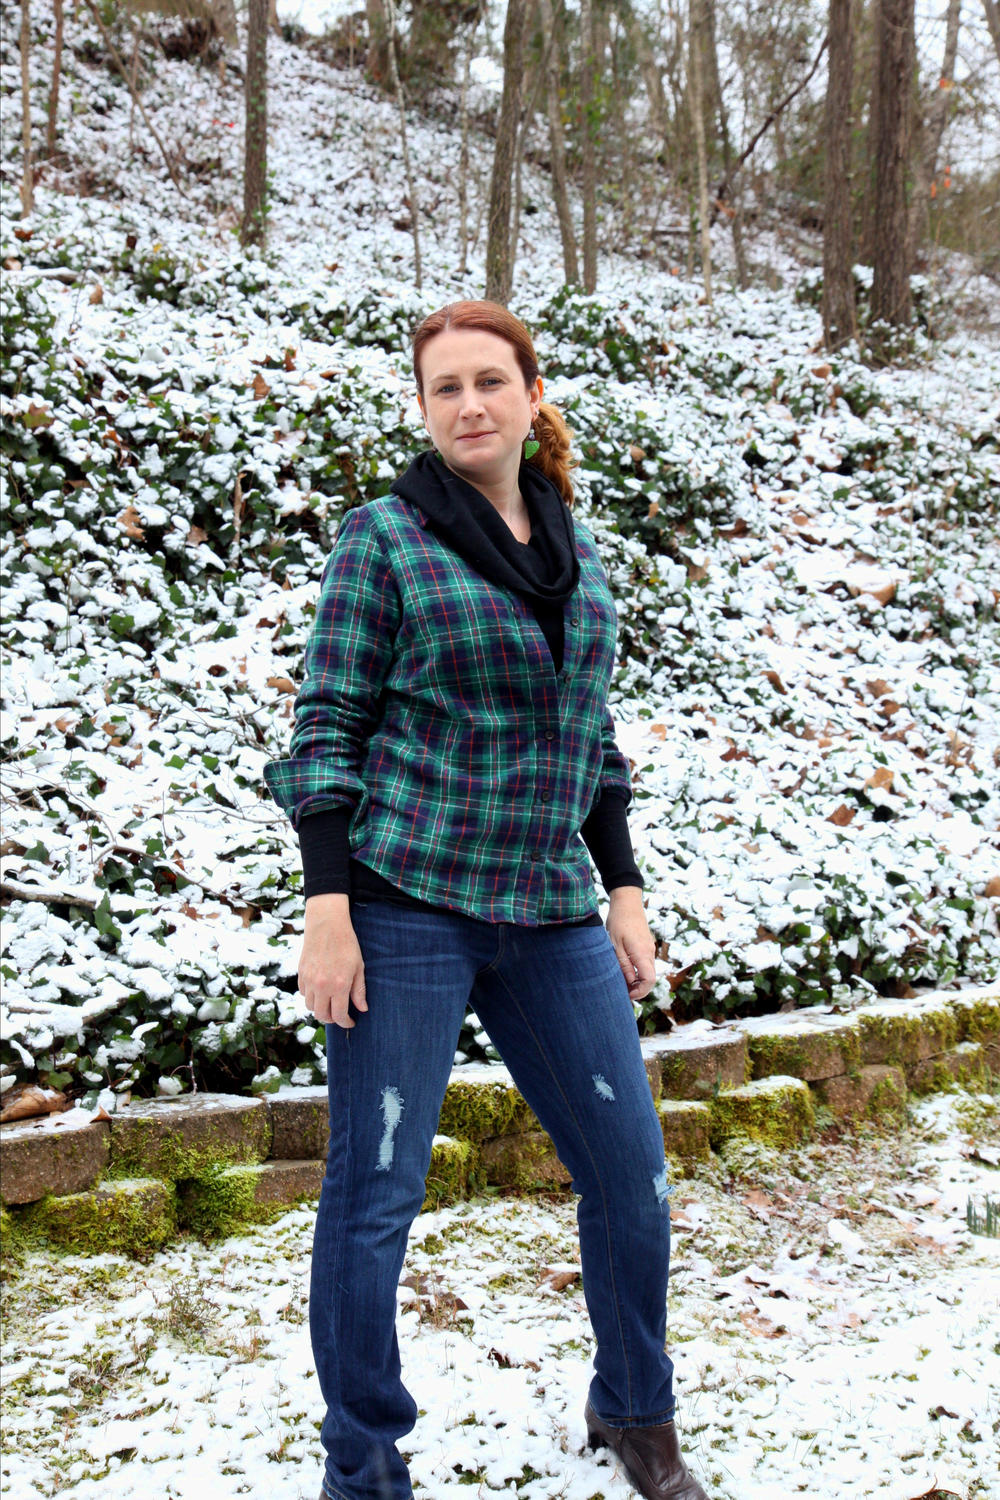 Look! Snow! Had do take a flannel POW shoot with this backdrop!